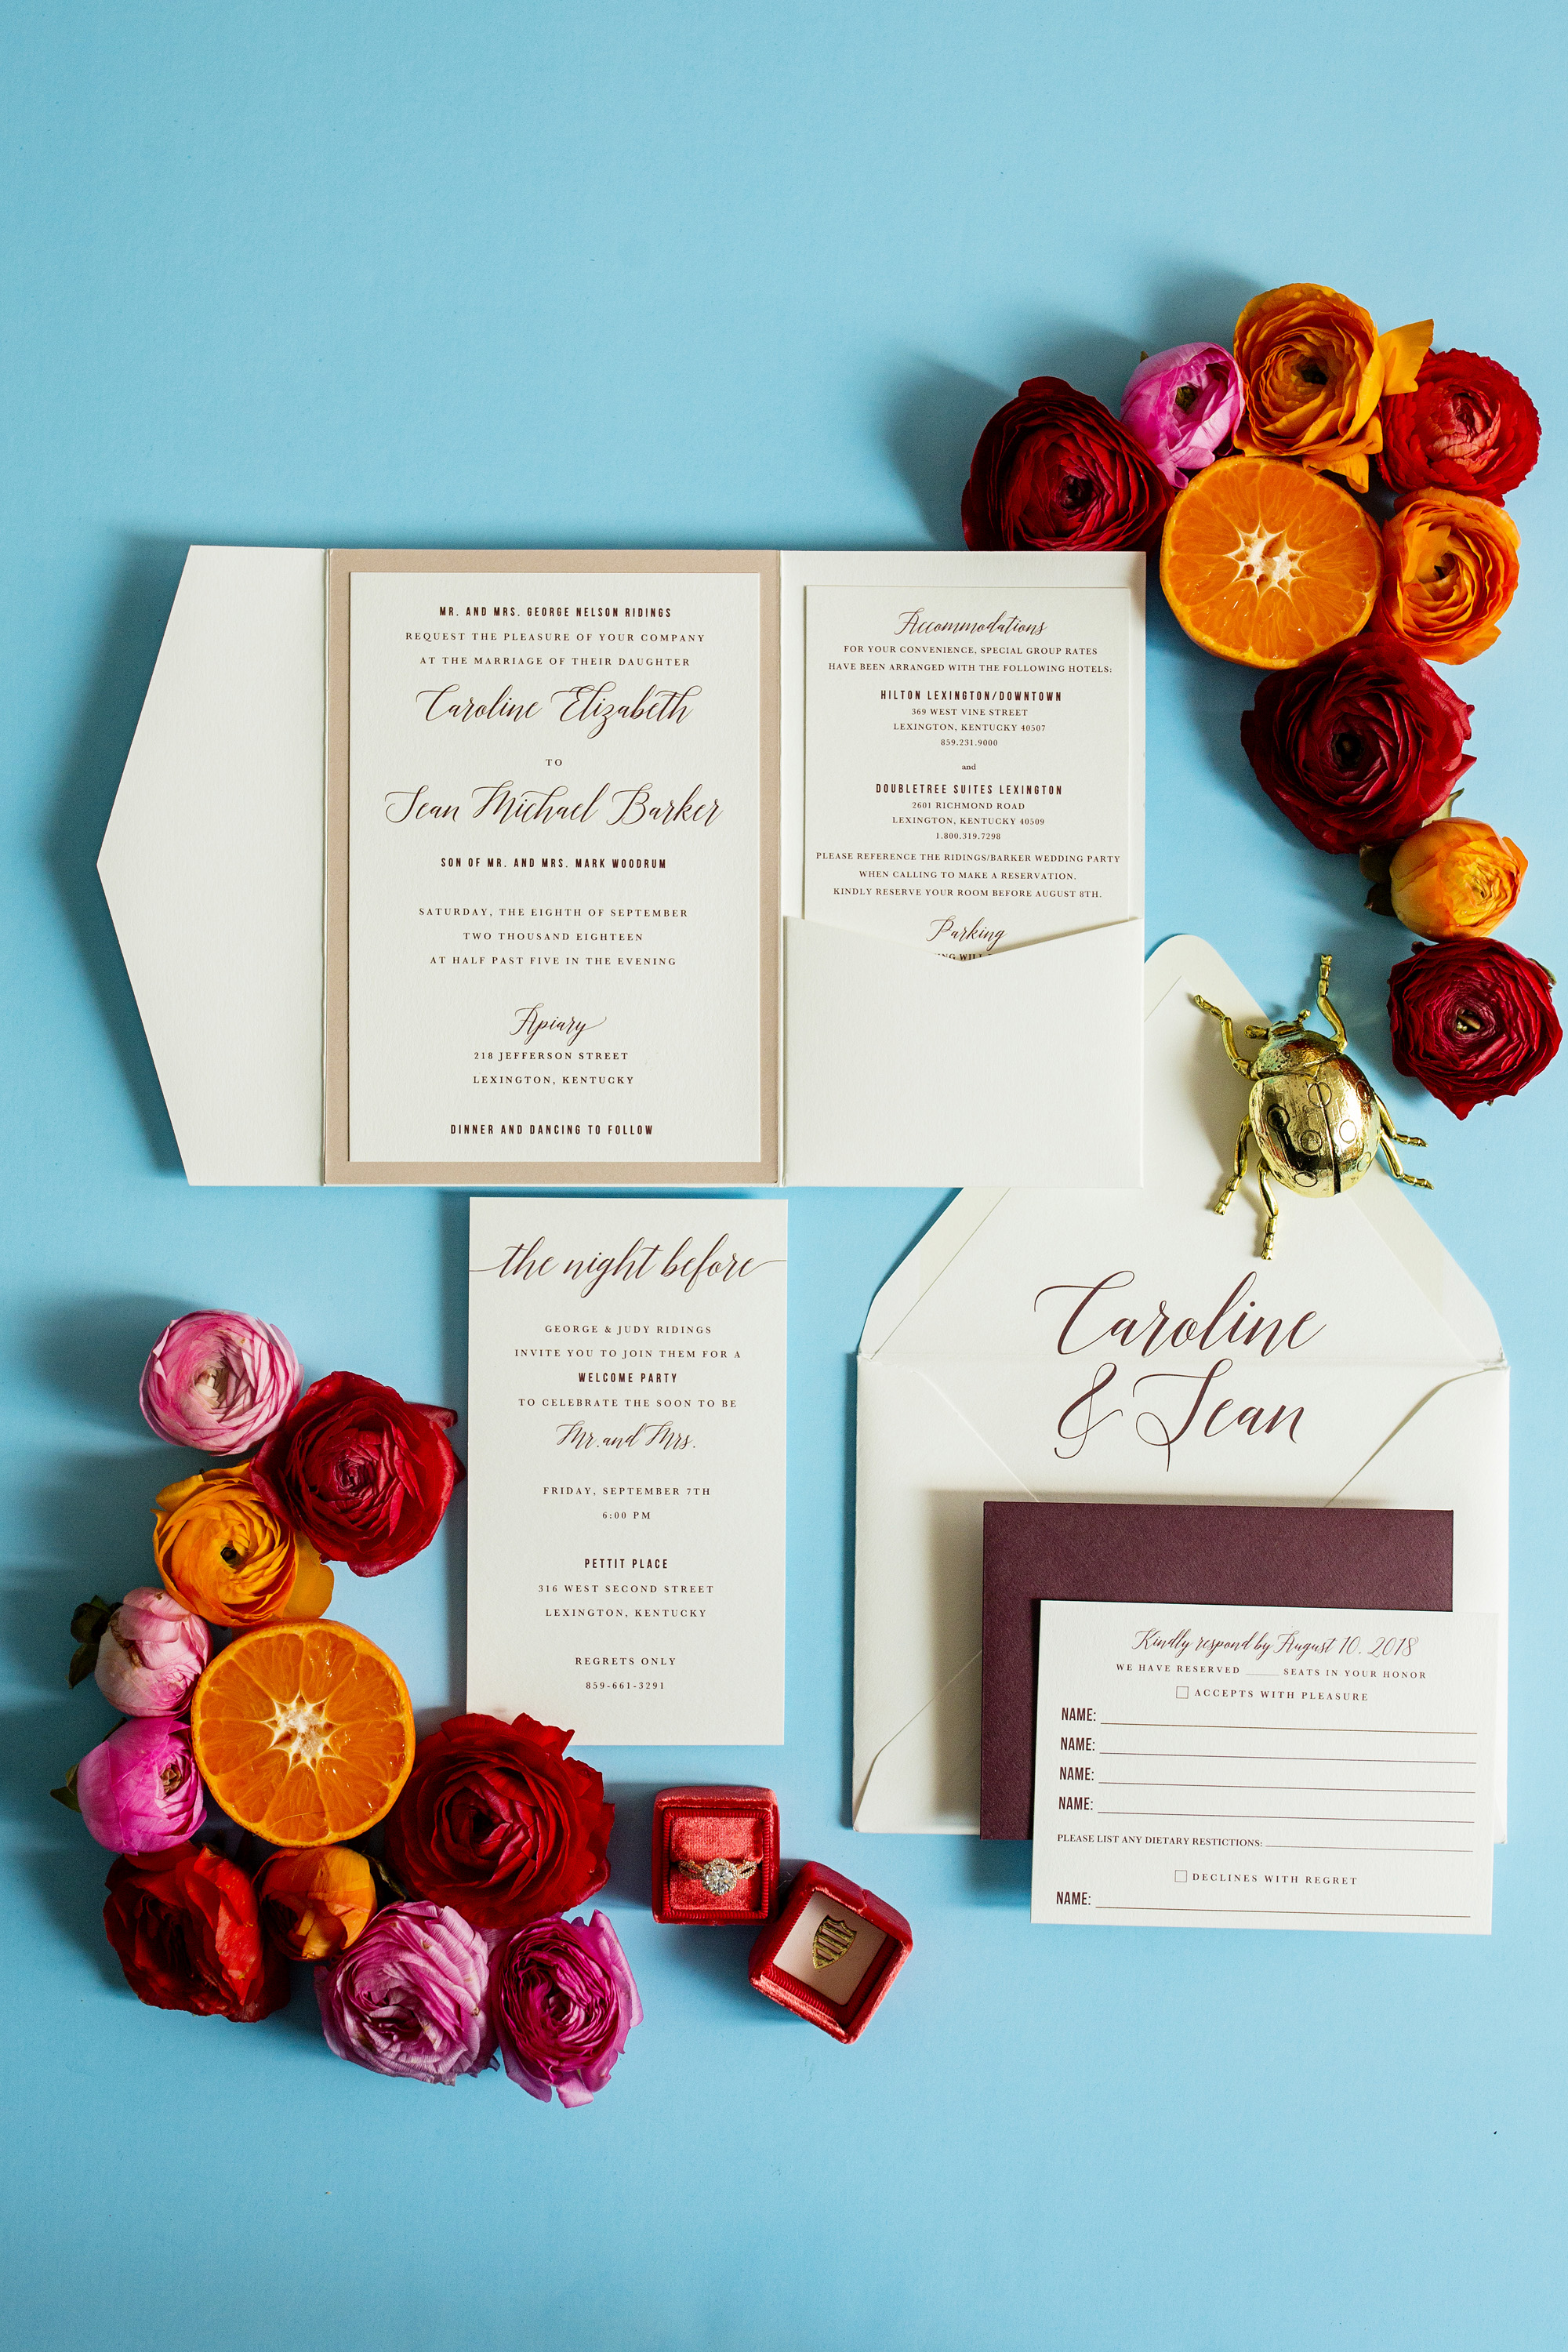 Seriously_Sabrina_Photography_Commercial_Simply_Done_Invites_2019_March_145